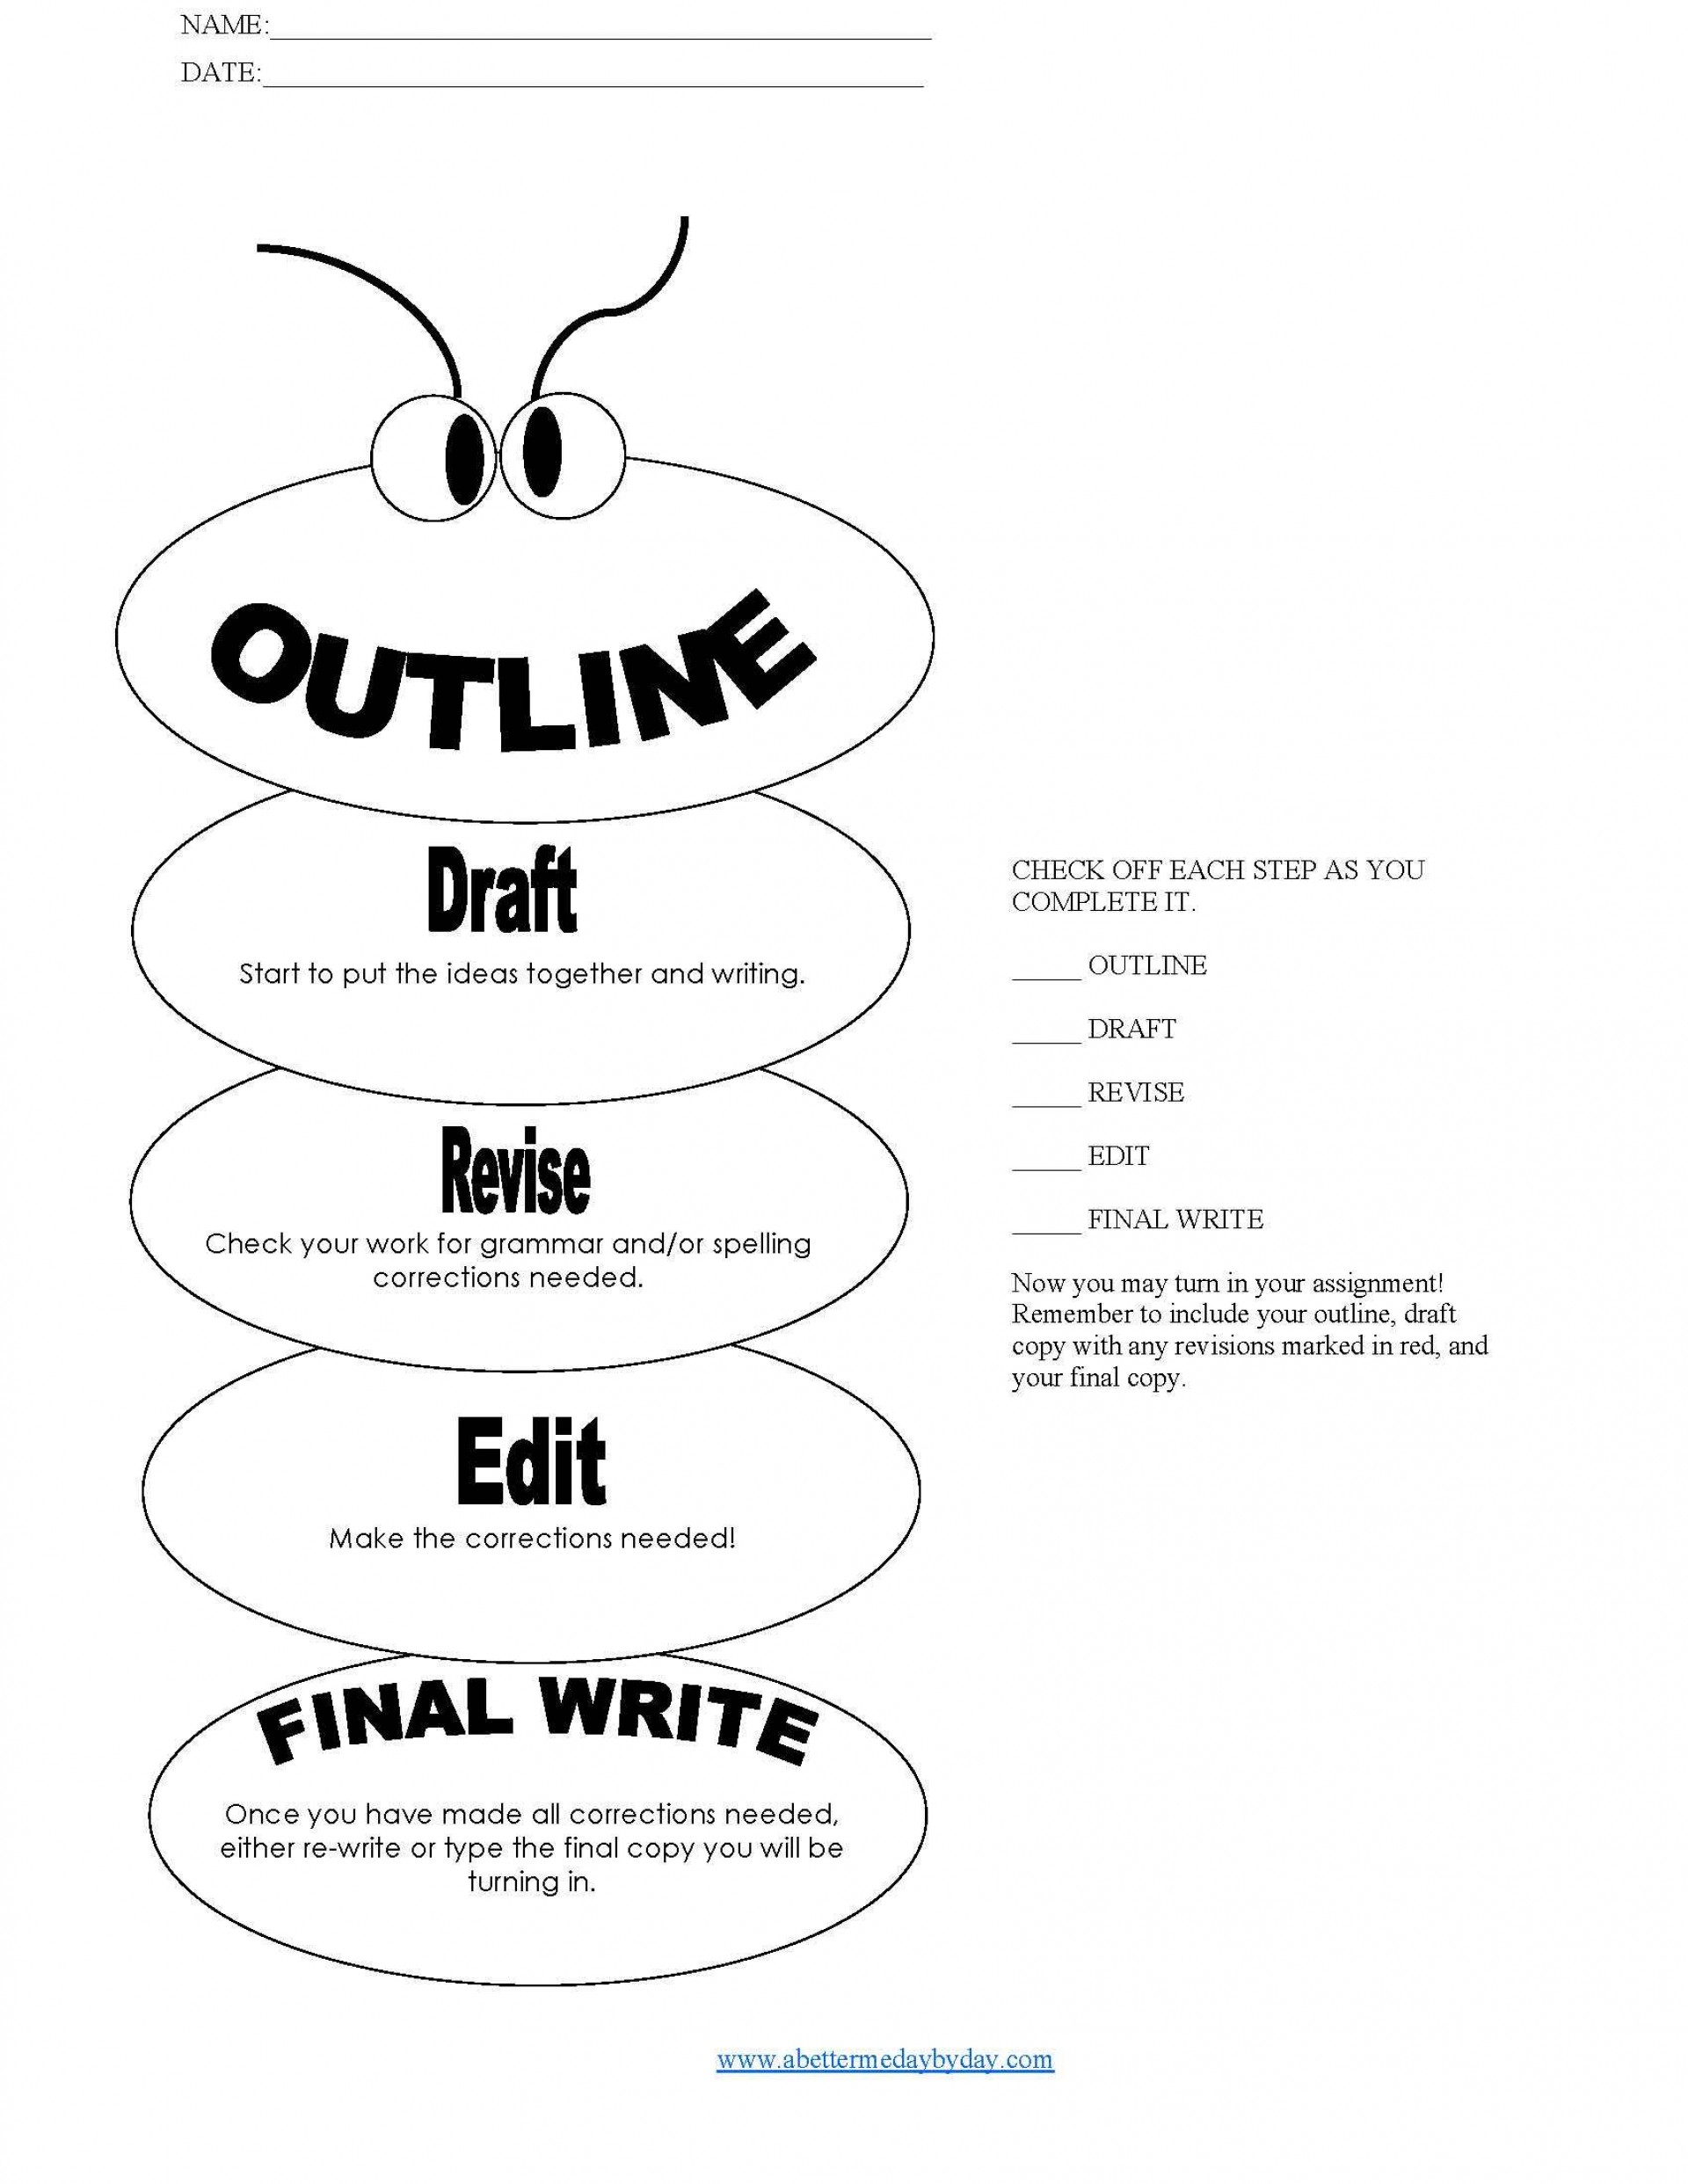 010 Essay Example How To Write Page Hs3 Simple Paragraph Outline Worm Form With Writing Process Check List 1 Phenomenal A 5 In Hour One Day Night 1920